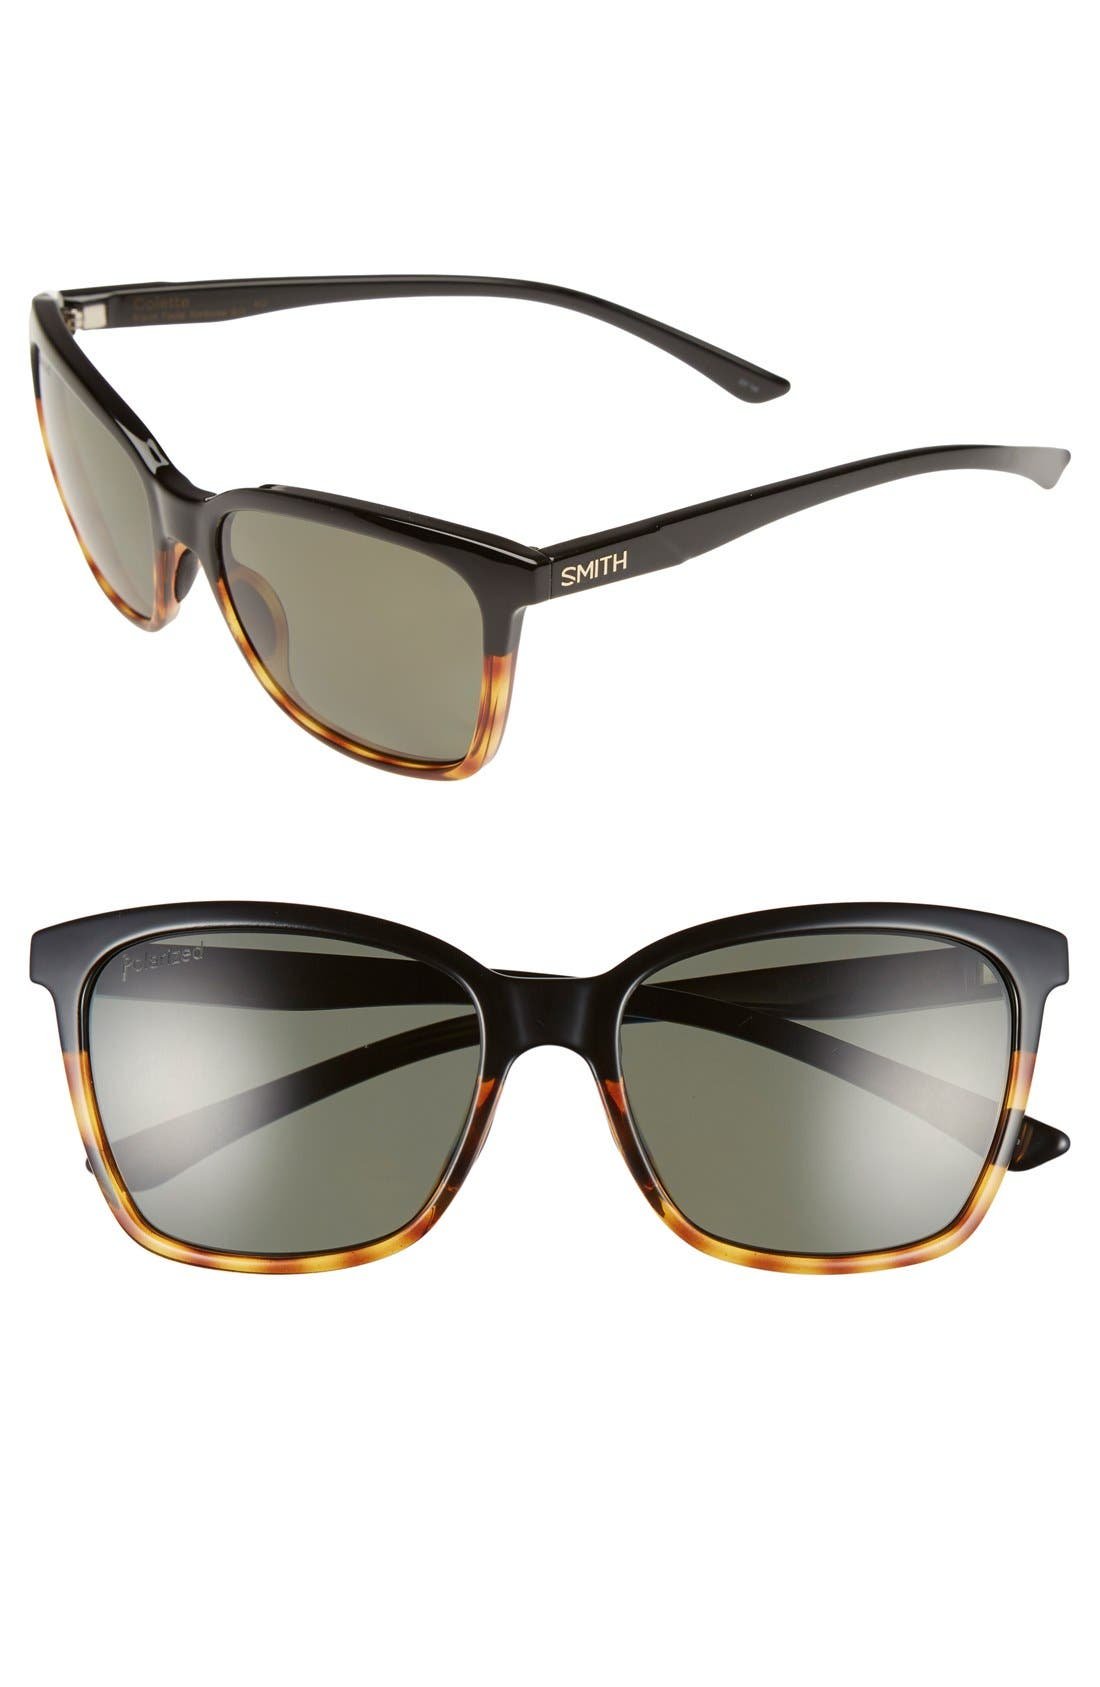 Smith 'Colette' 55mm Polarized Sunglasses